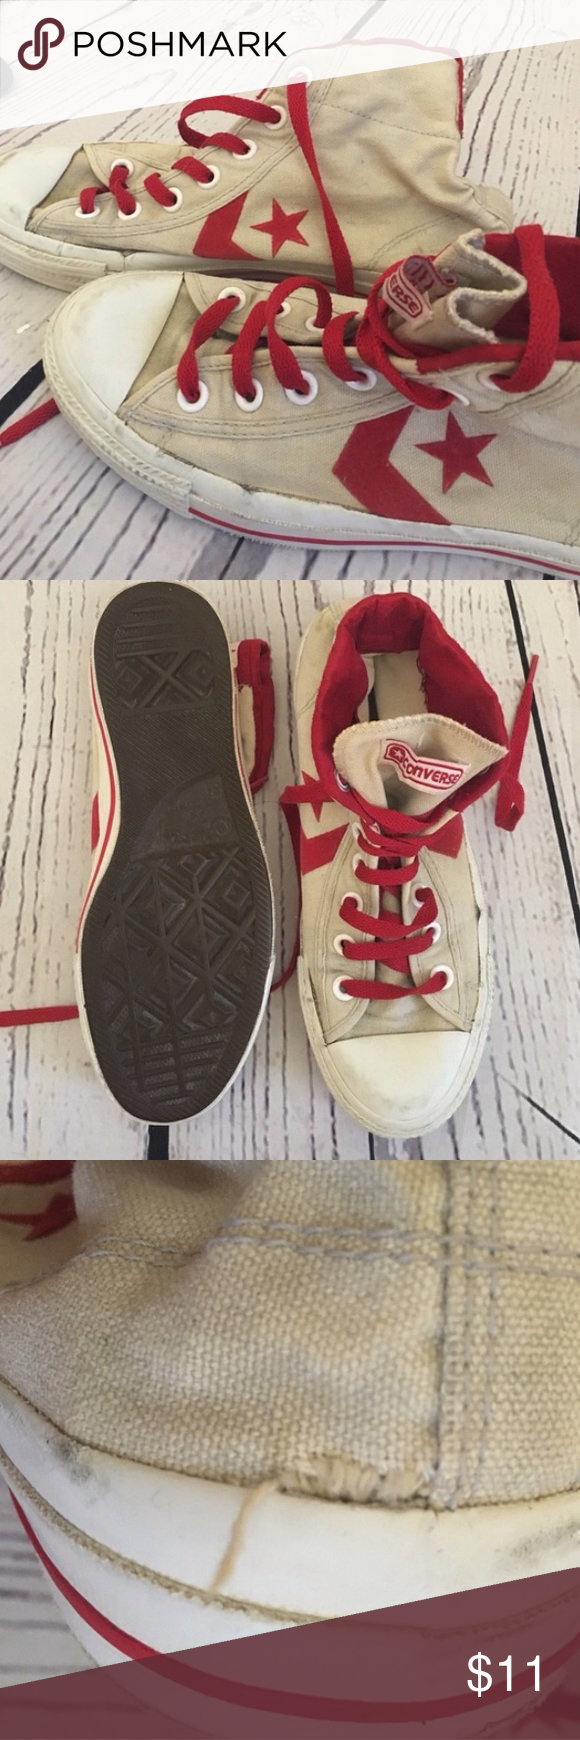 8b1e1876a4 Retro old school high top converse red laces These are definitely worn in